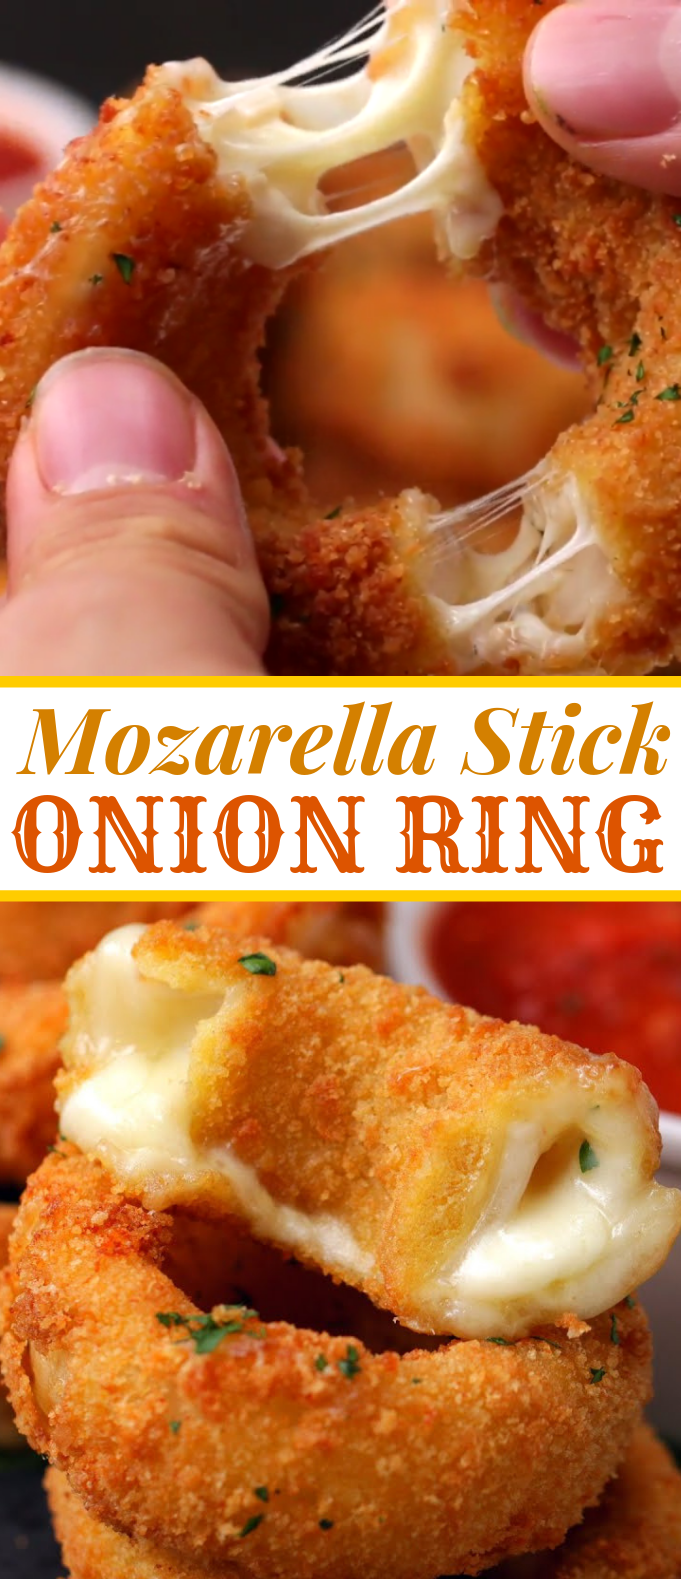 Mozzarella Stick Onion Rings #dinner #appetizer